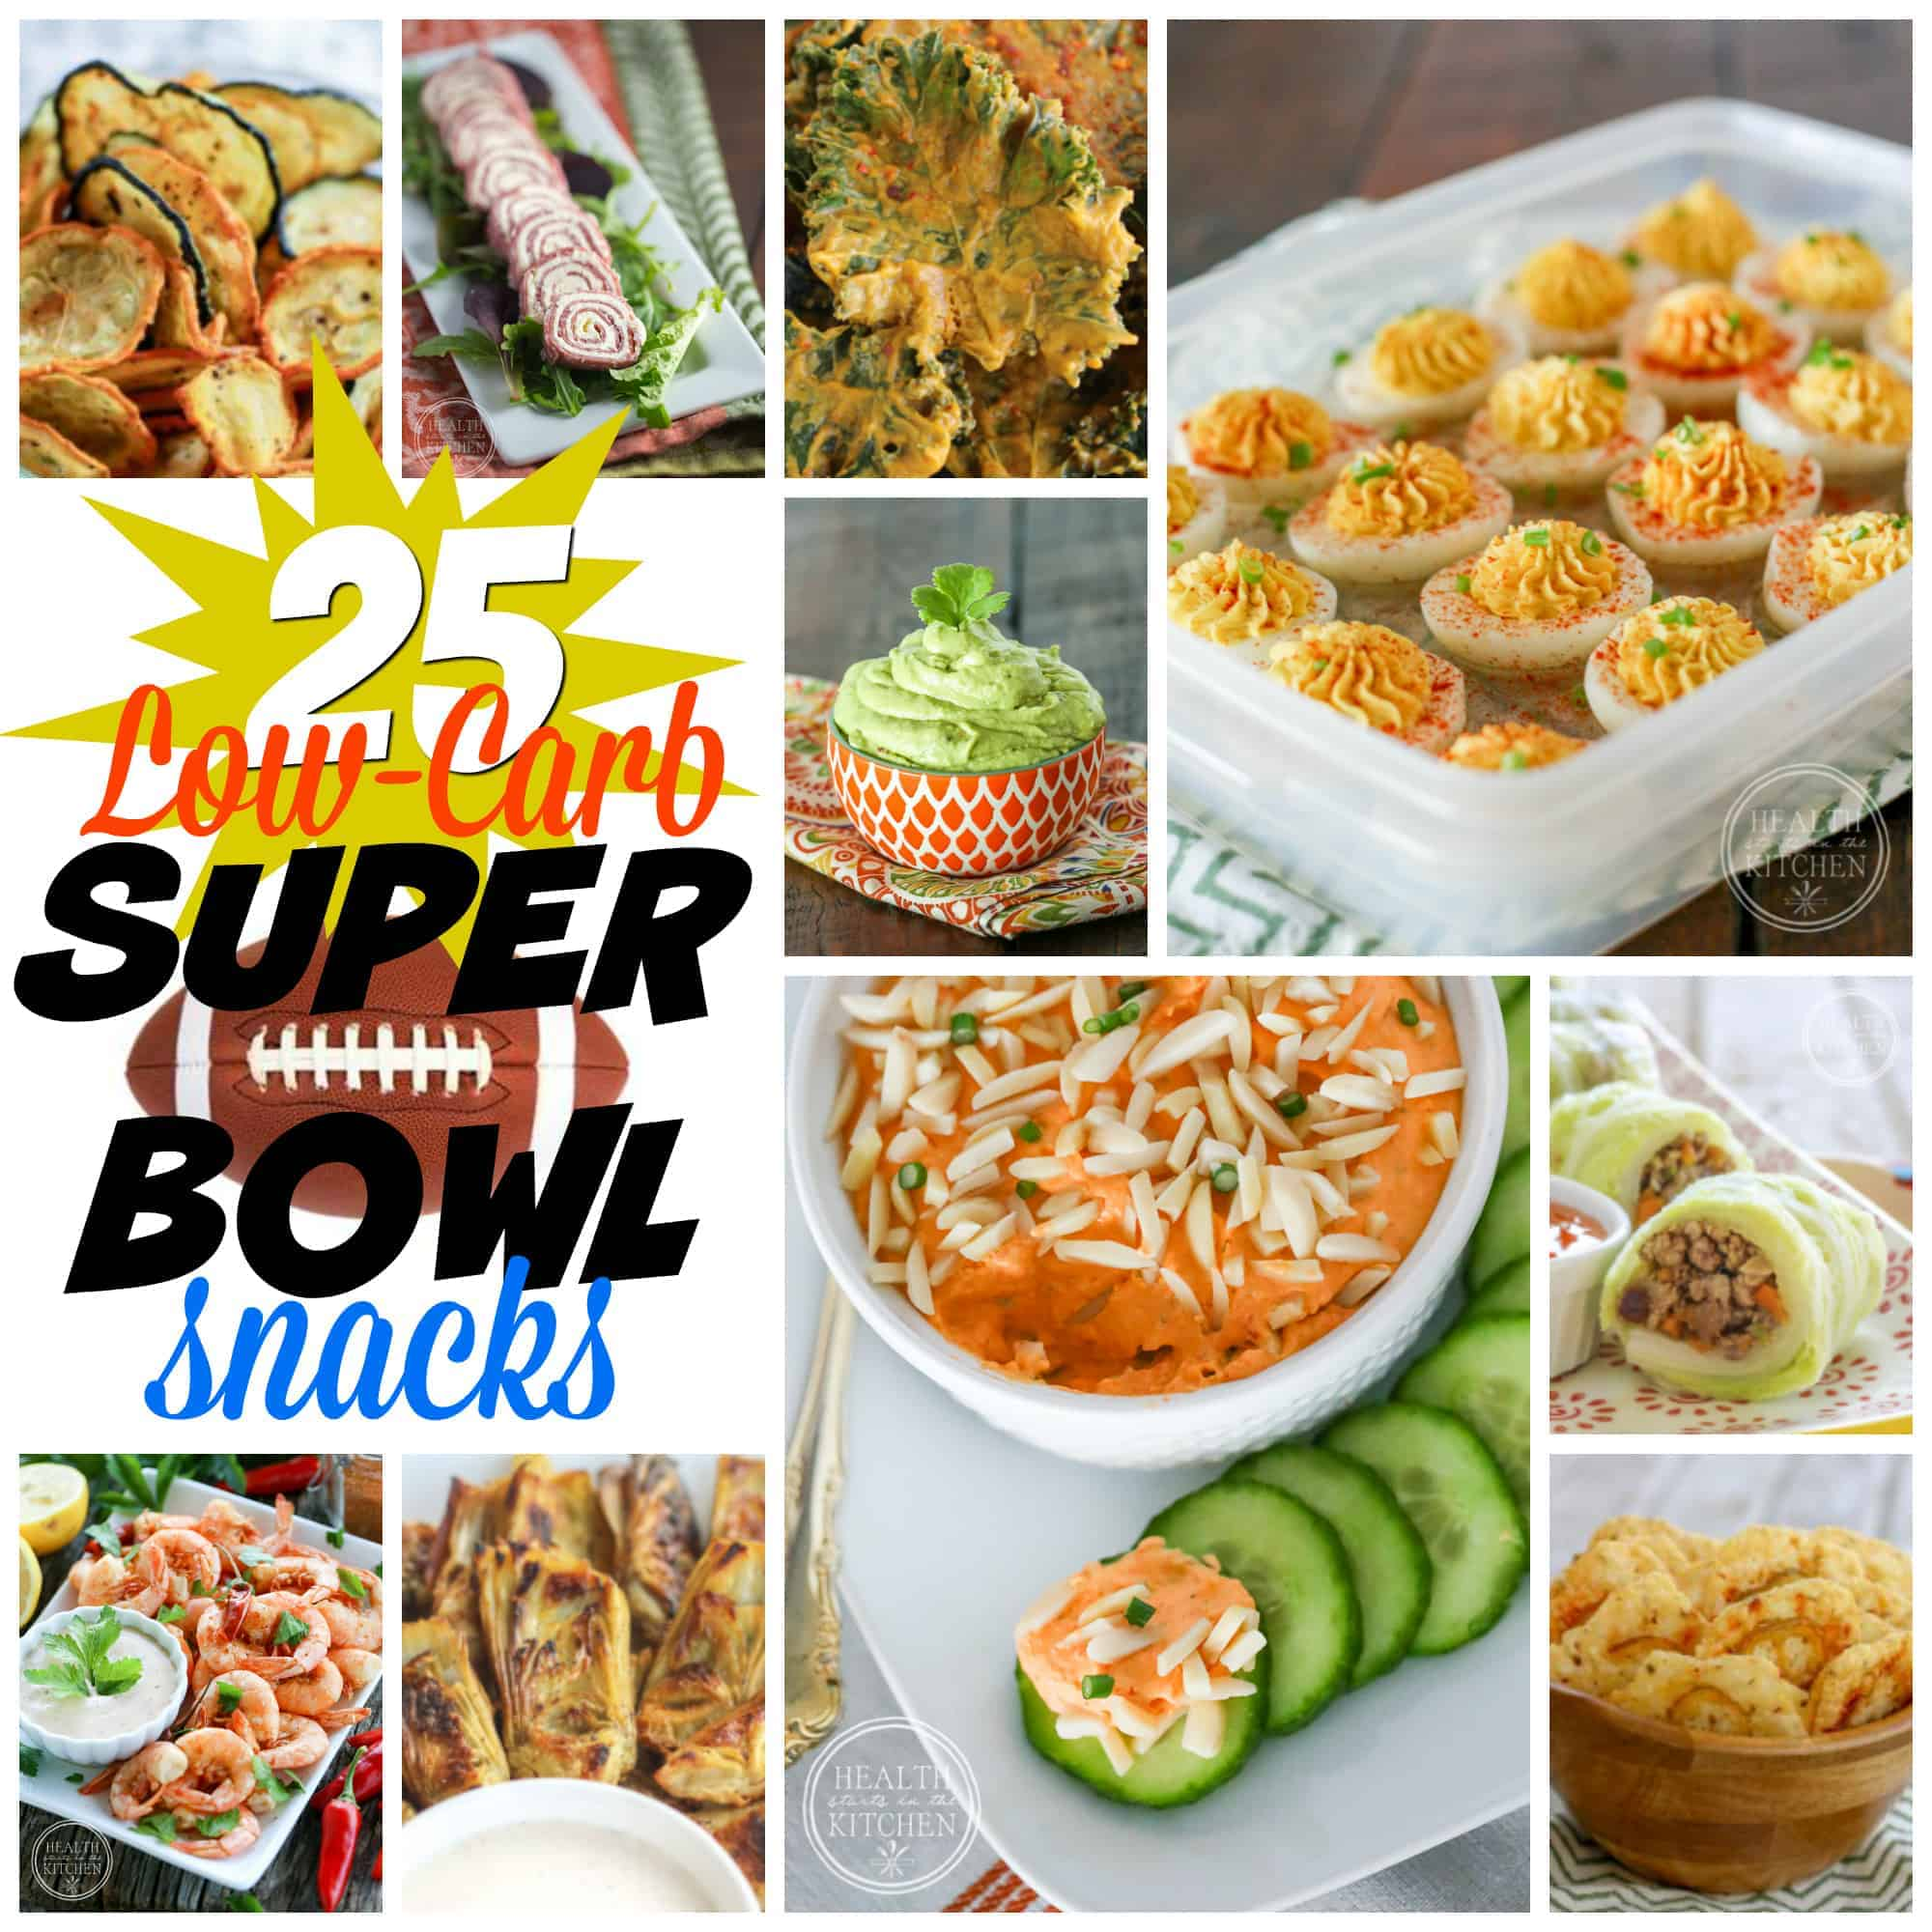 25+ Low-Carb Super Bowl Snacks